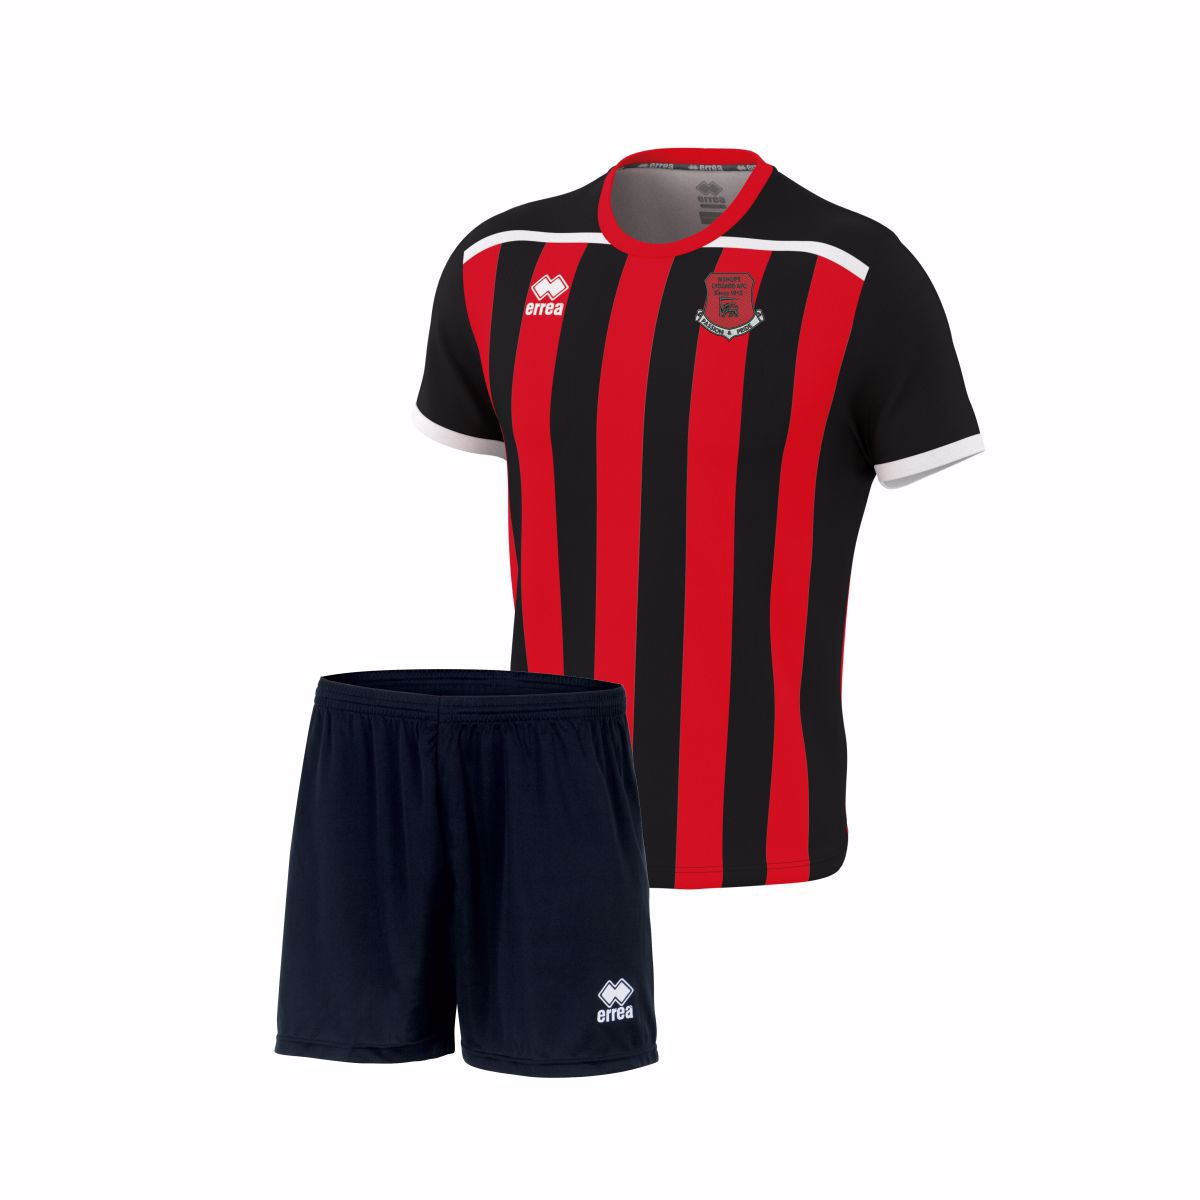 BISHOPS LYDEARDS FC Elliot S/S Matchday Shirt/Shorts- ADULT